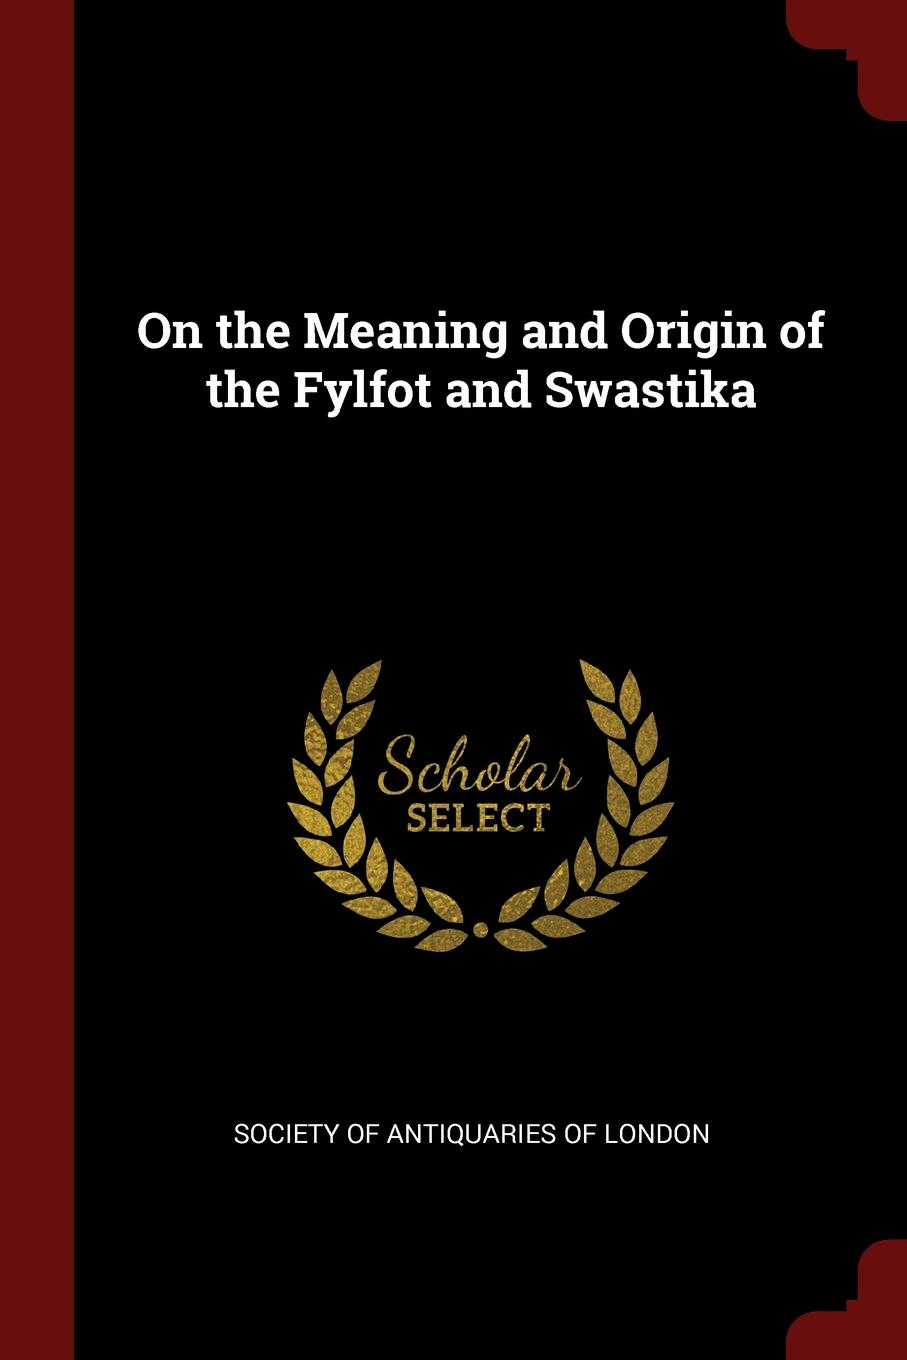 On the Meaning and Origin of Fylfot Swastika